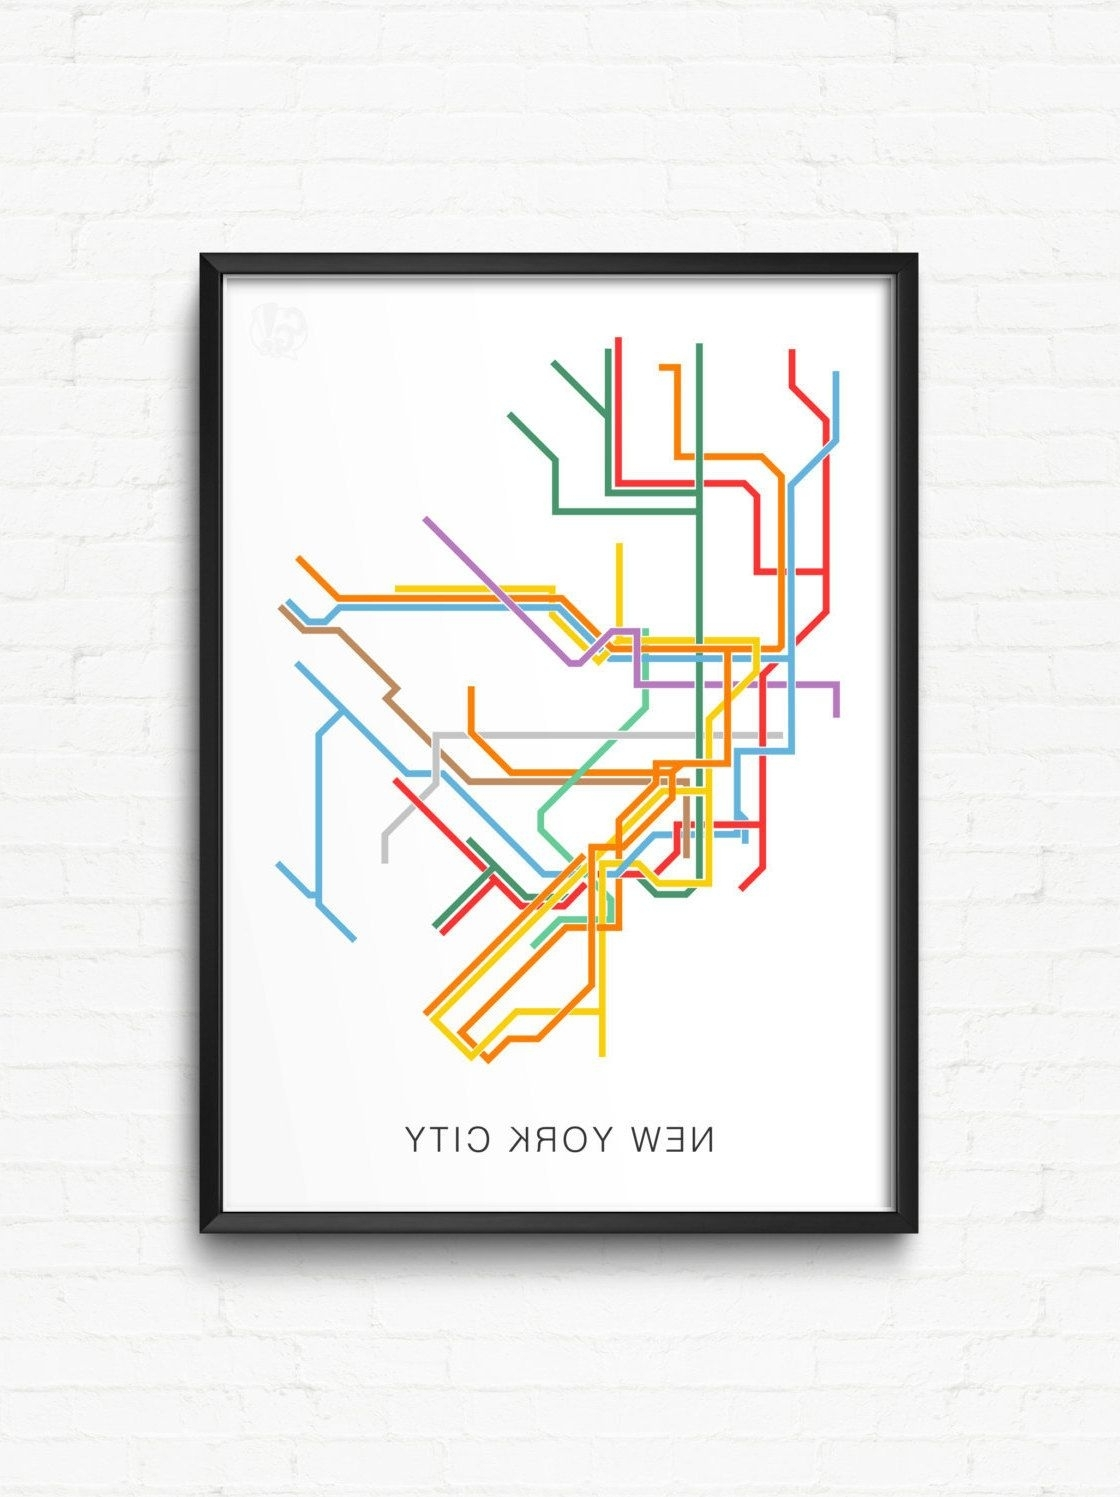 Popular New York Subway Map Wall Art intended for New York City Print Of Nyc Subway Map - City Transit Map Poster, Nyc